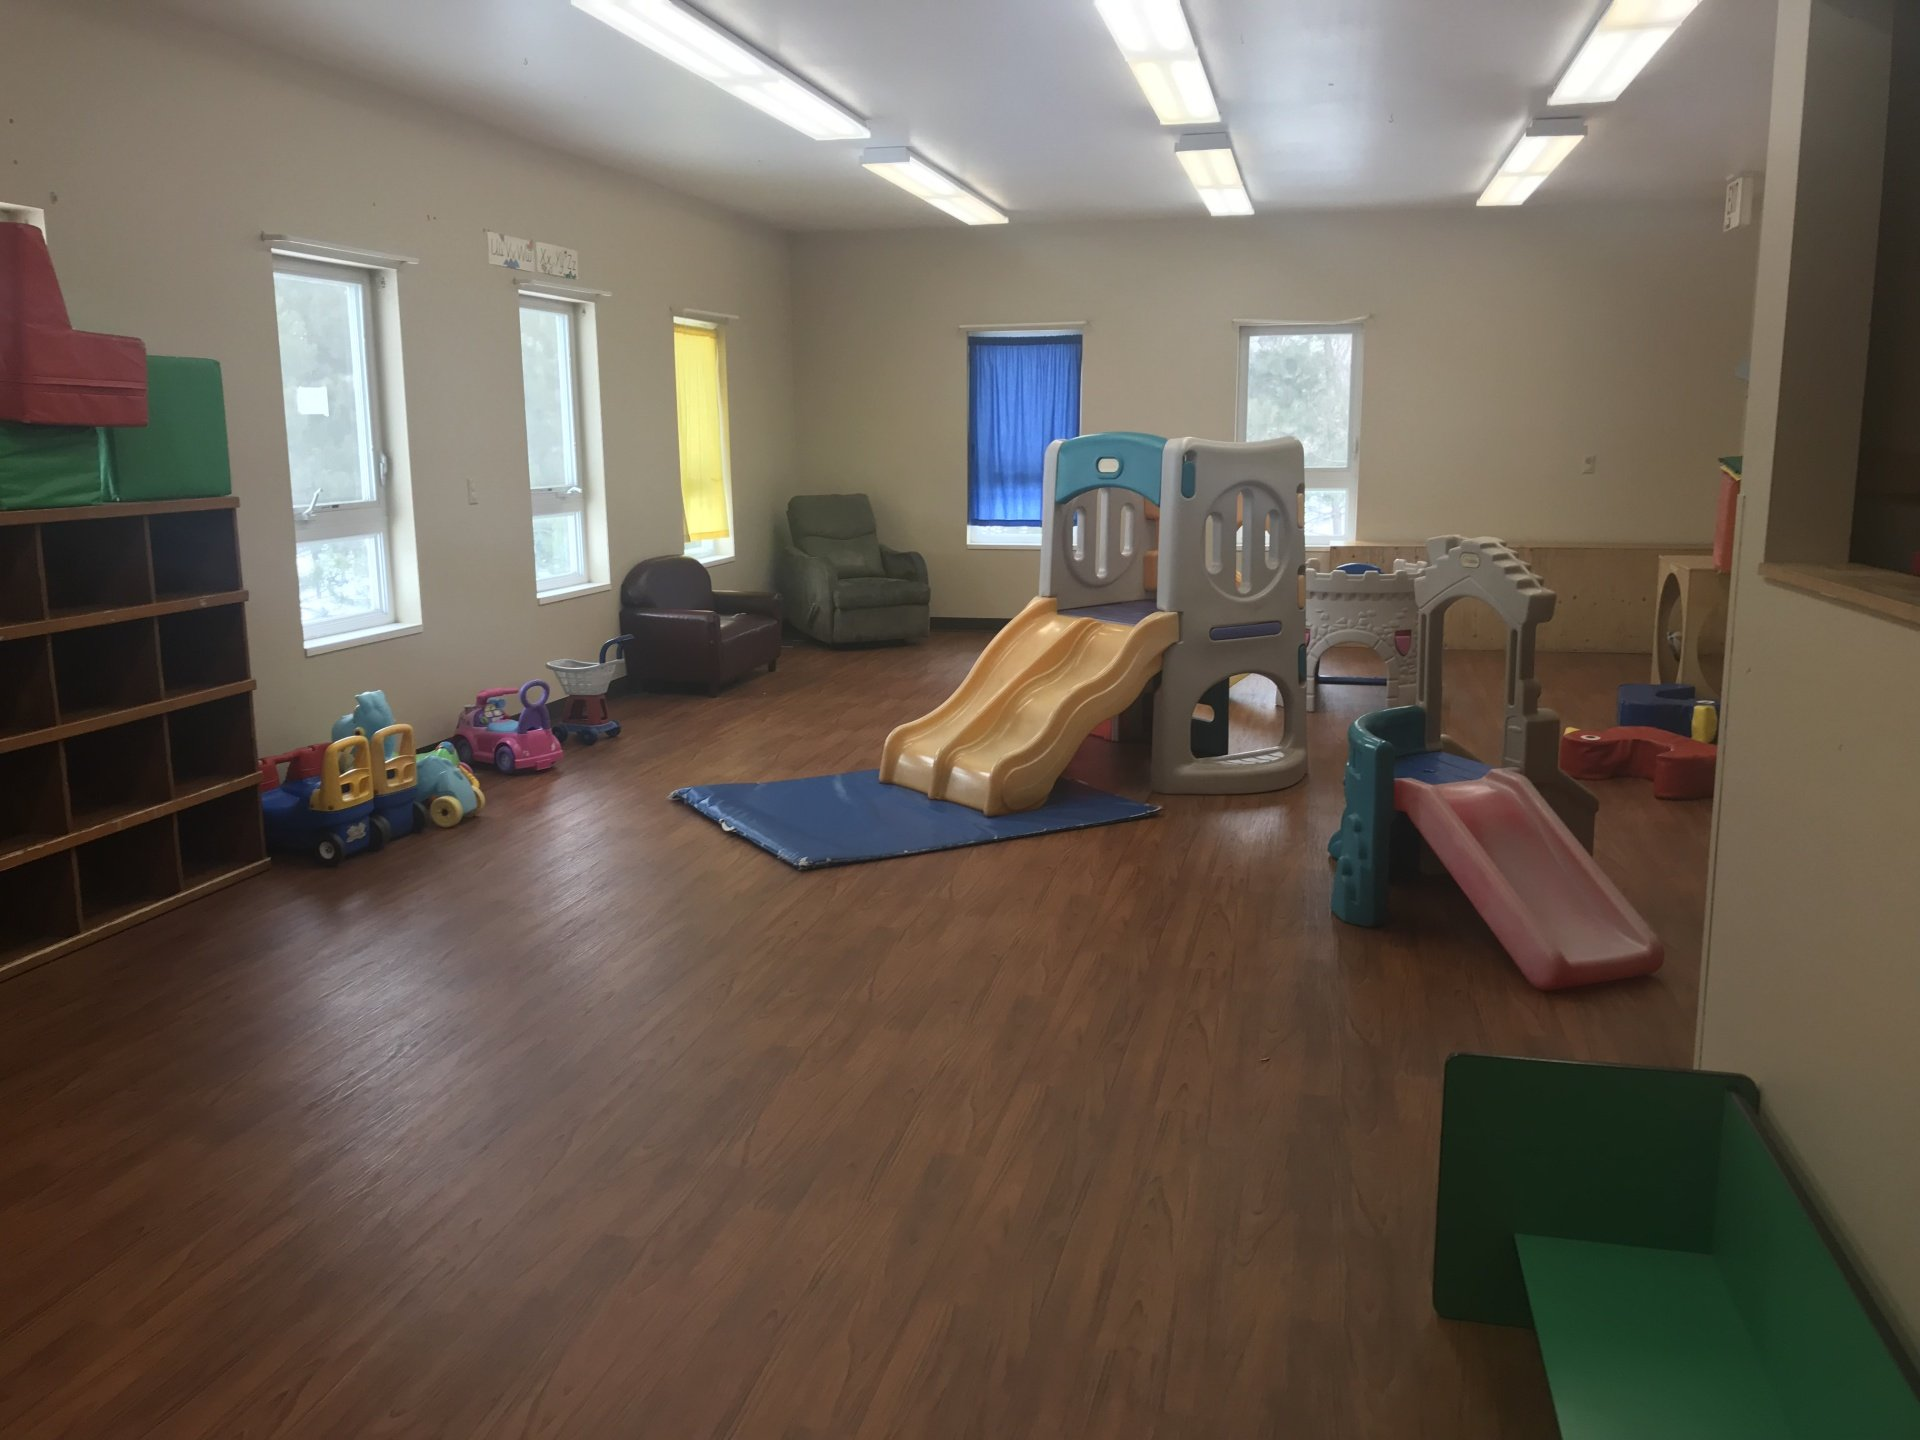 Brighter Beginnings Early Learning Center image 2